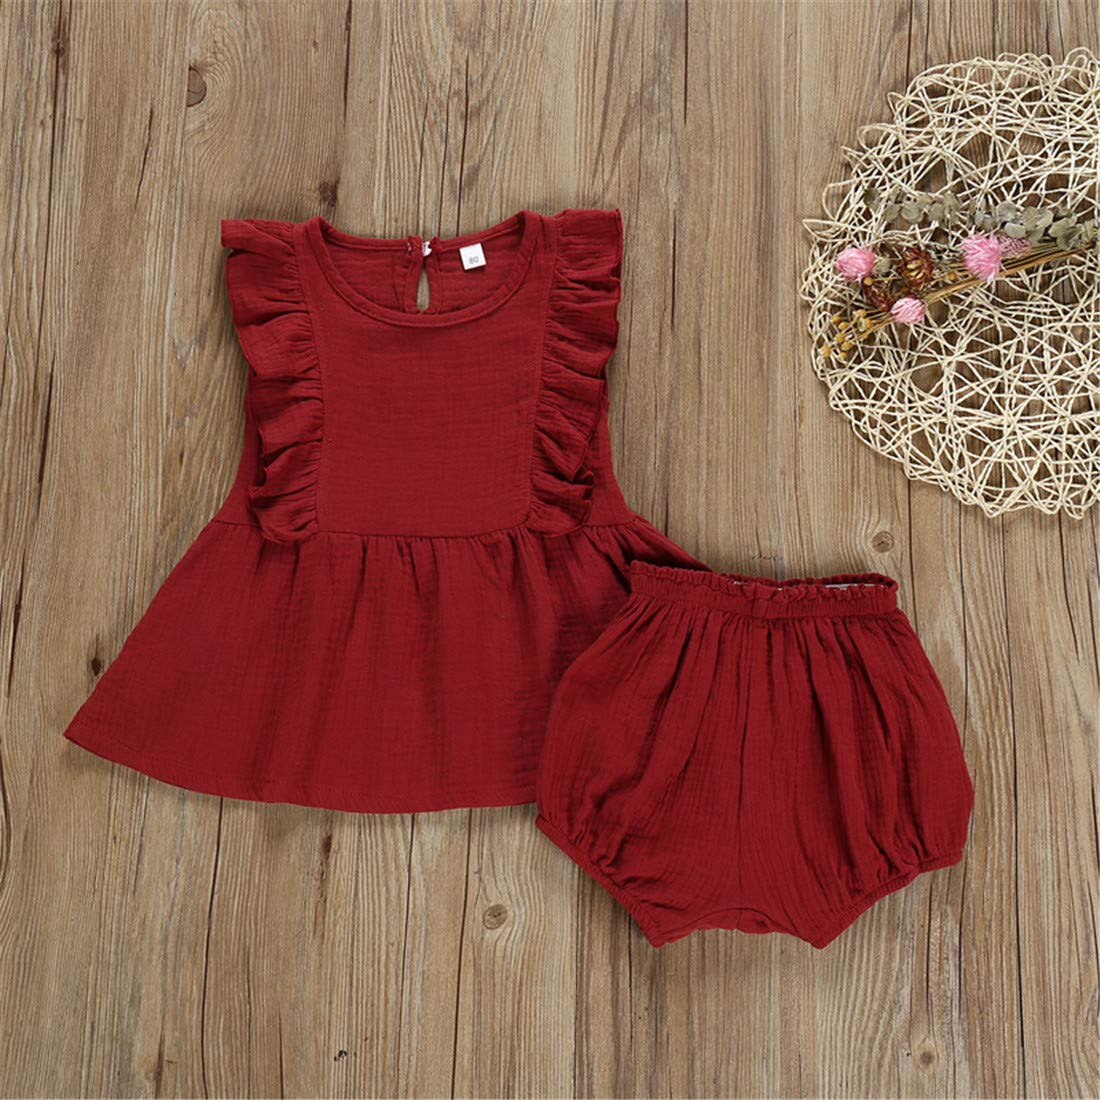 Moore-Direct Toddler Baby Girls Cotton Linen Clothes Sleeveless Ruffle Dress Tops+Bottom Shorts 2Pcs Outfits Set